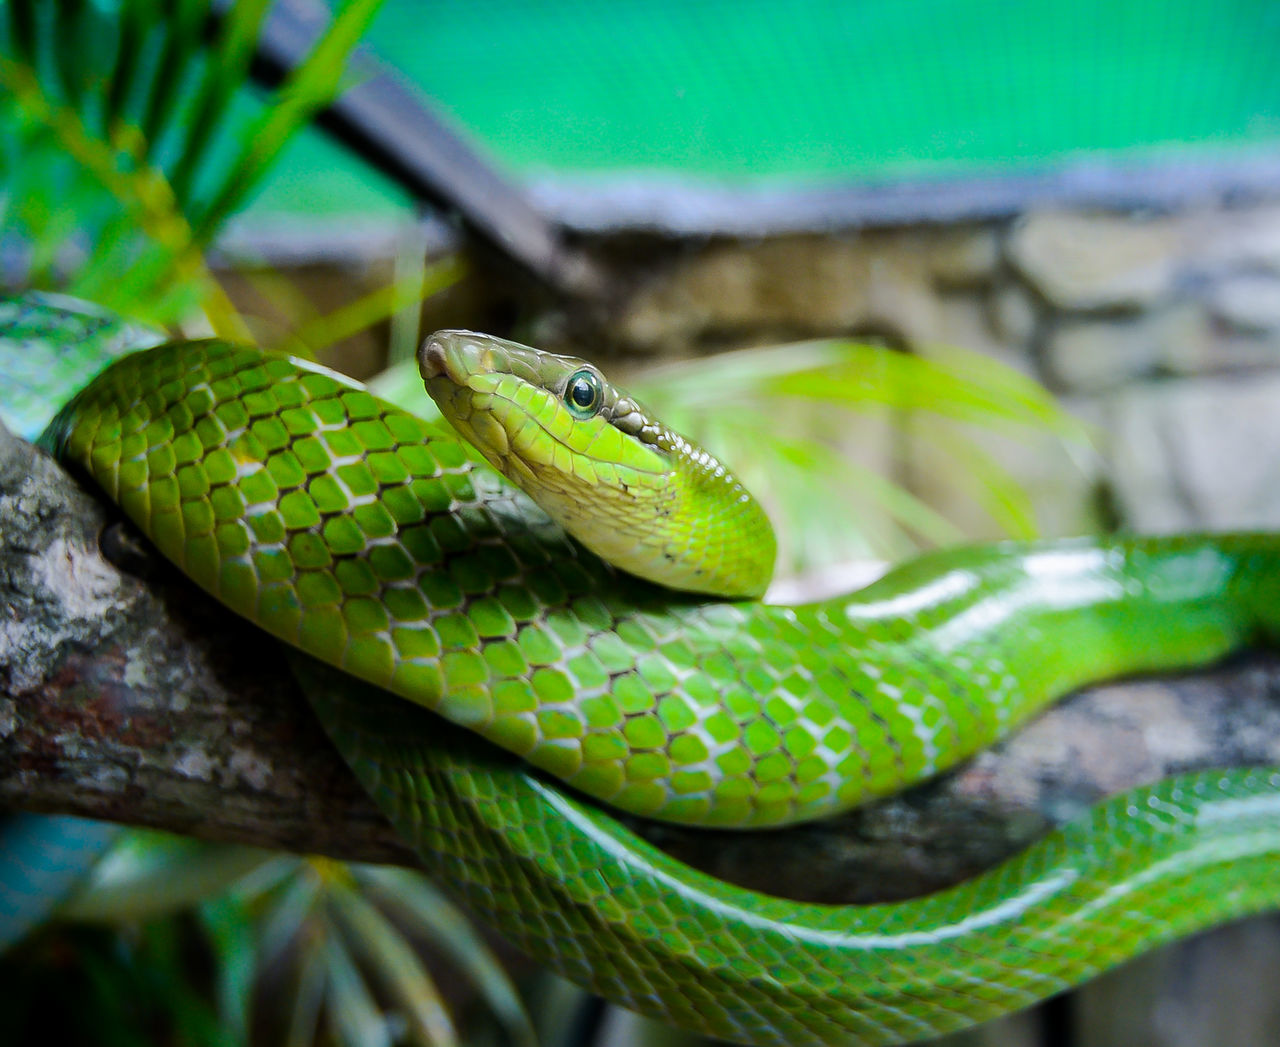 Green Snake Magazine Cover Natgeo PLANET ANI Poison Reptile Venom Wallpaper Wildlife & Nature Zoology